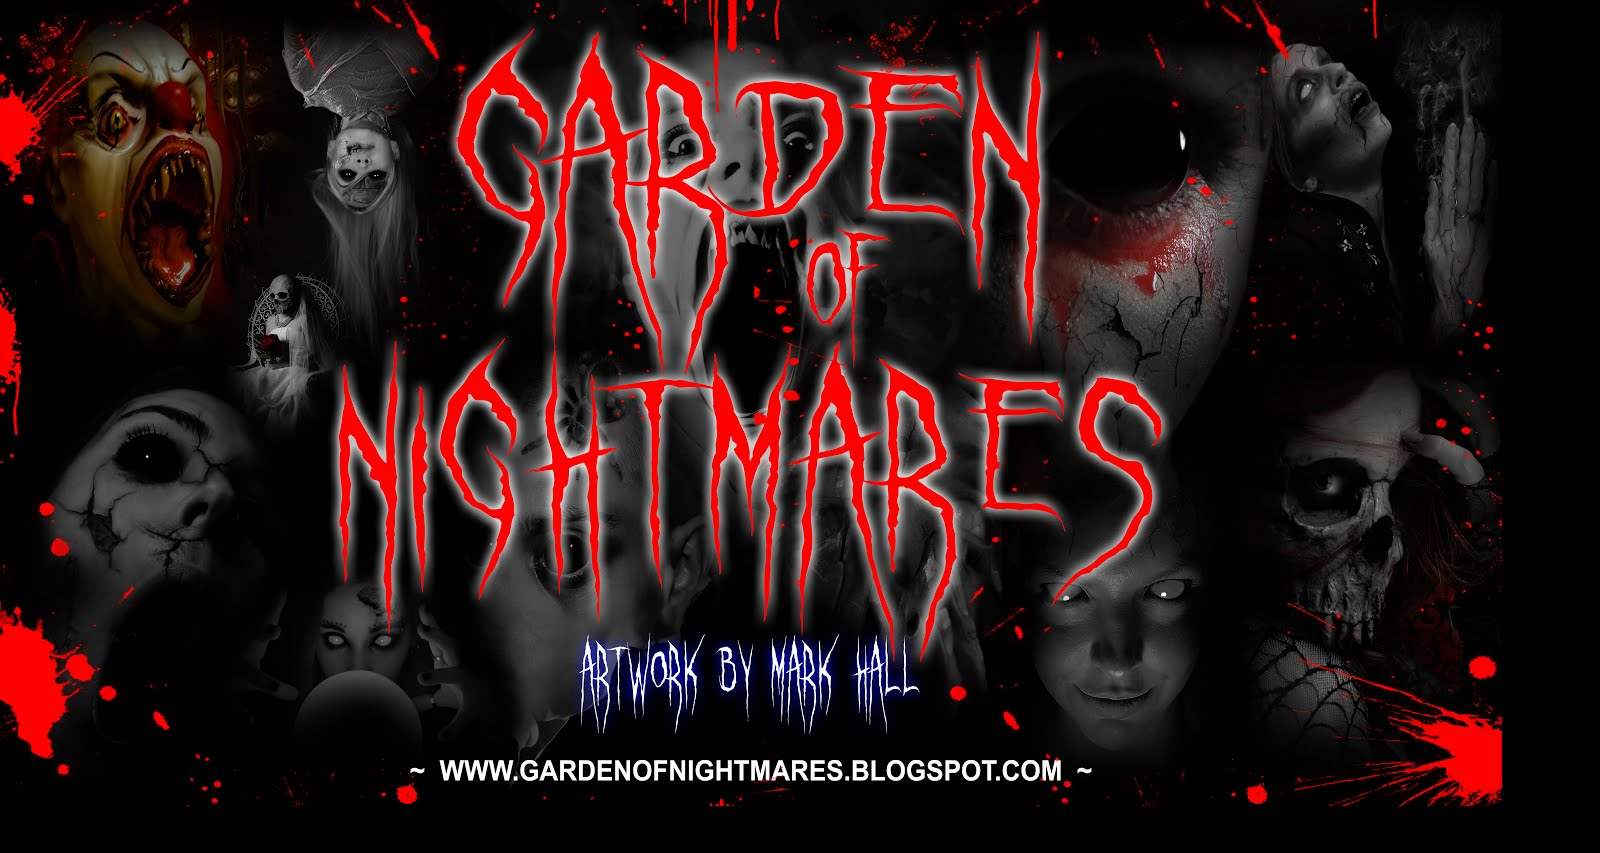 Garden Of Nightmares